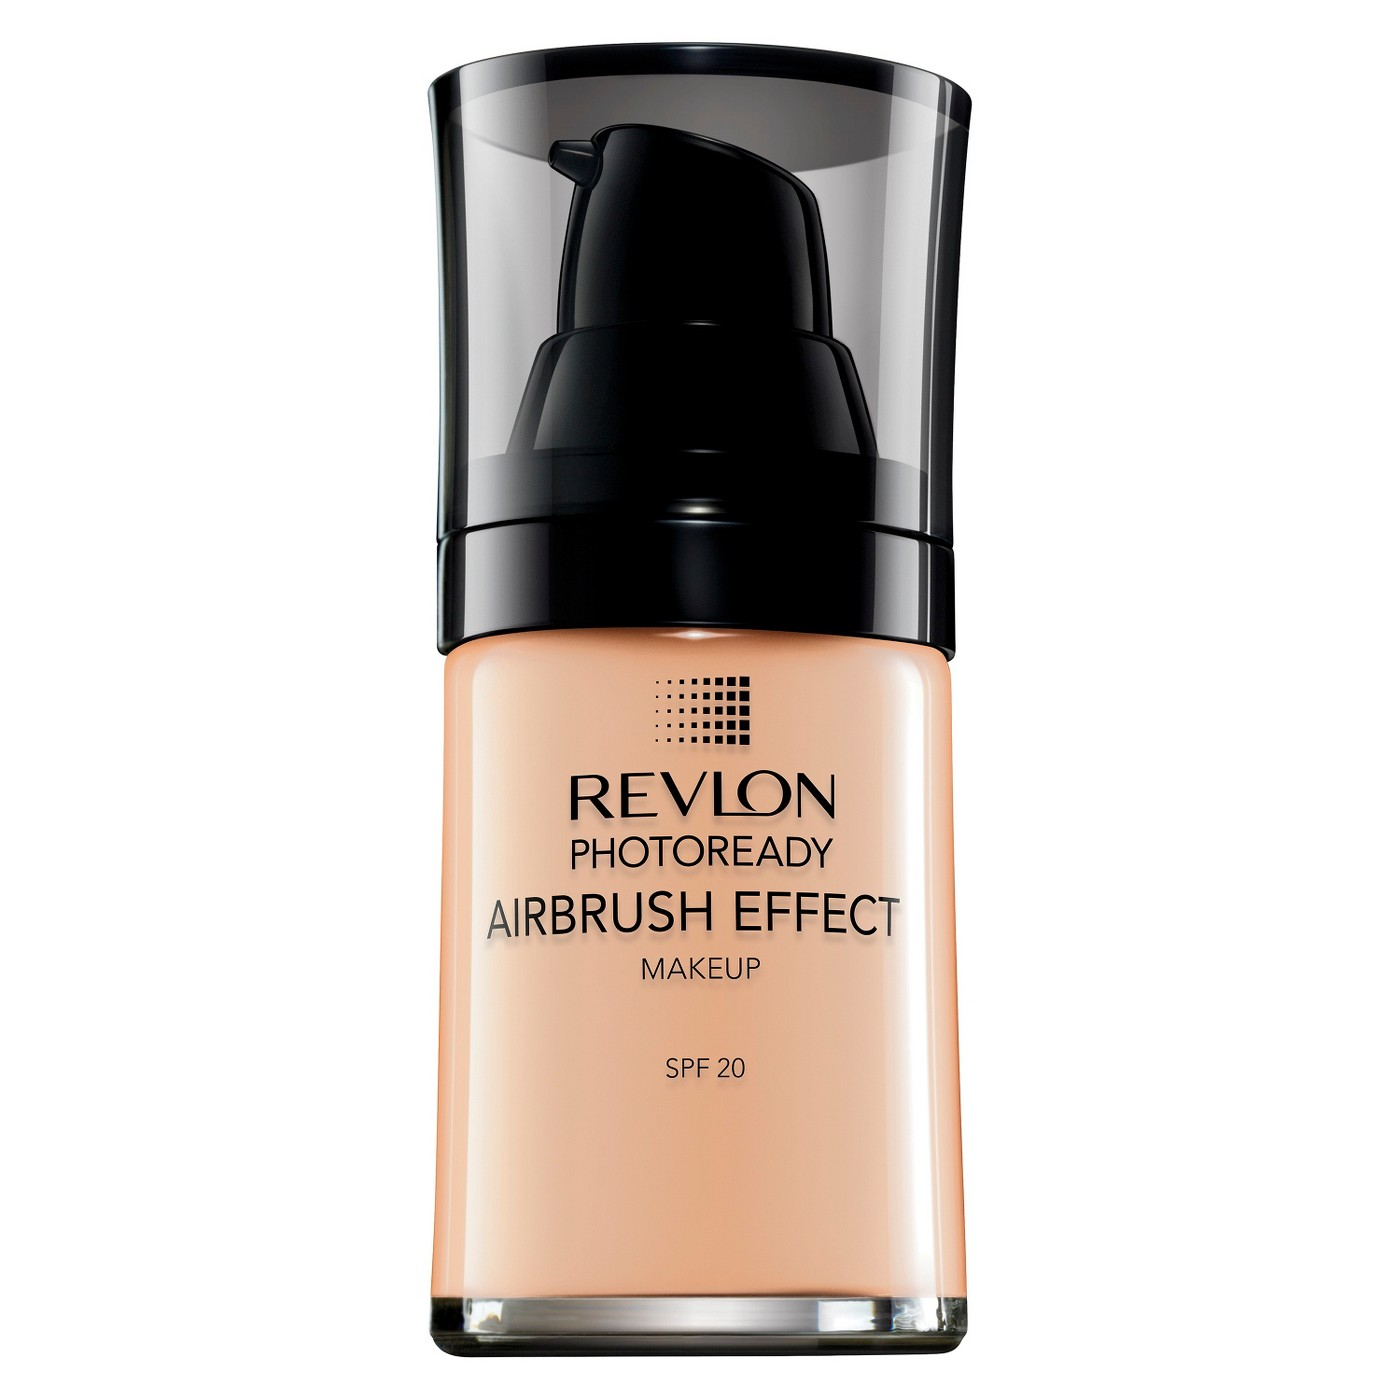 10 of the Best Drugstore Foundations Money Can Buy - THE BALLER ON A